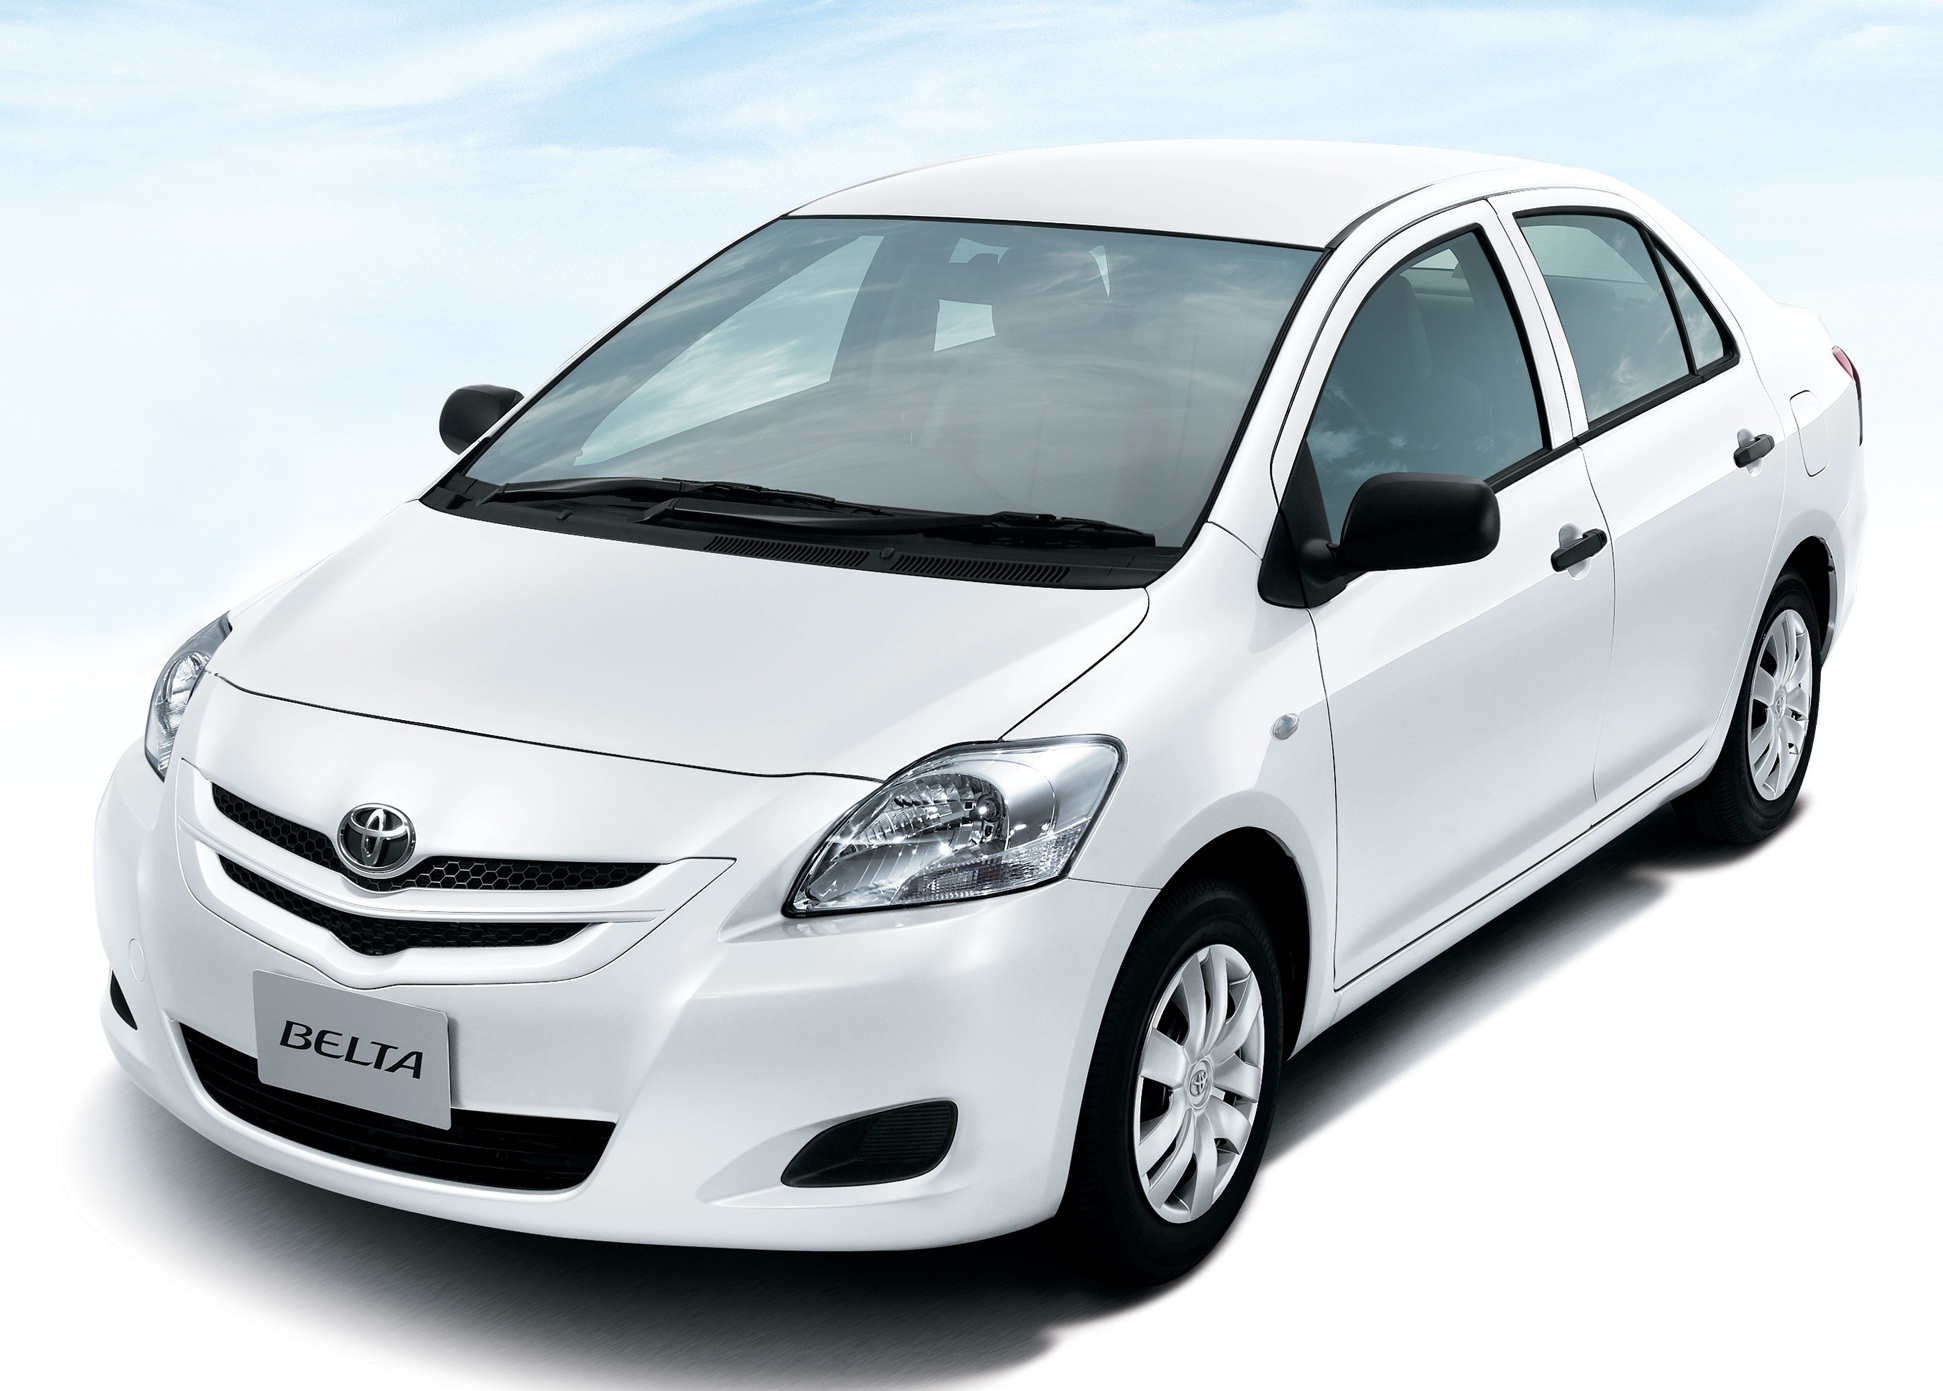 Toyota Belta Specification Cars for sale - Global Auto Trader\'s ...